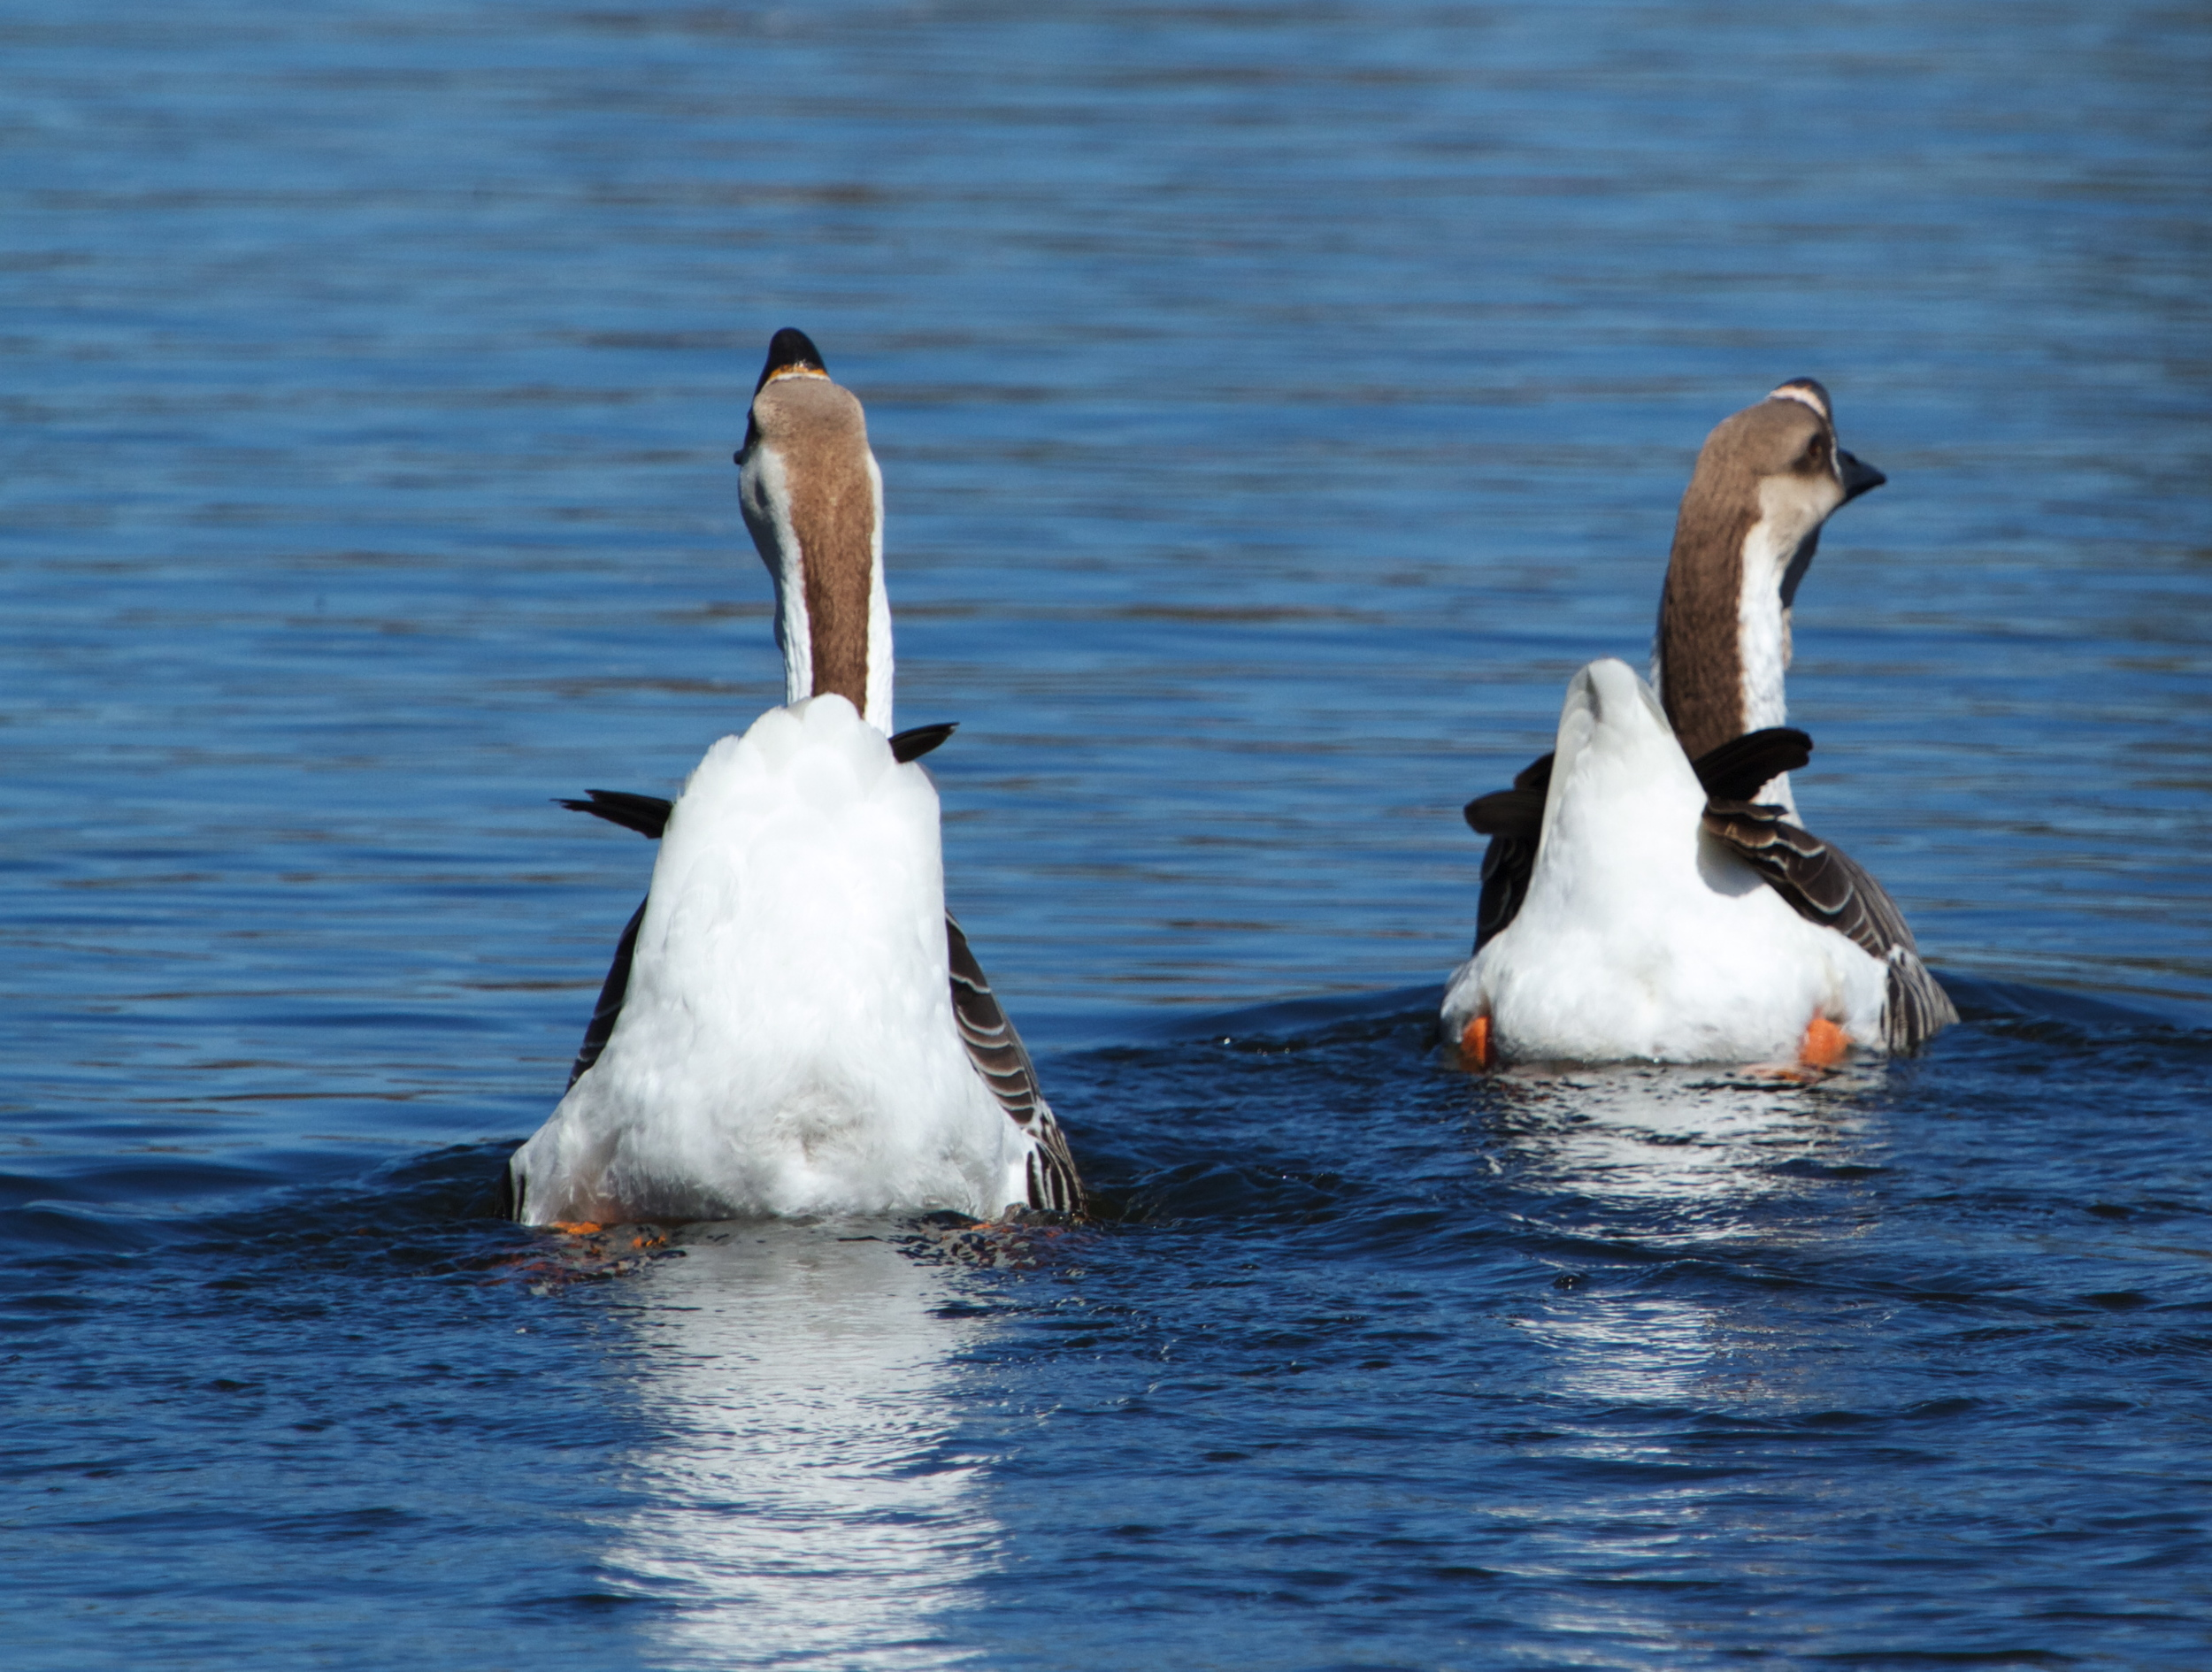 The domestic geese wave their tails goodbye!